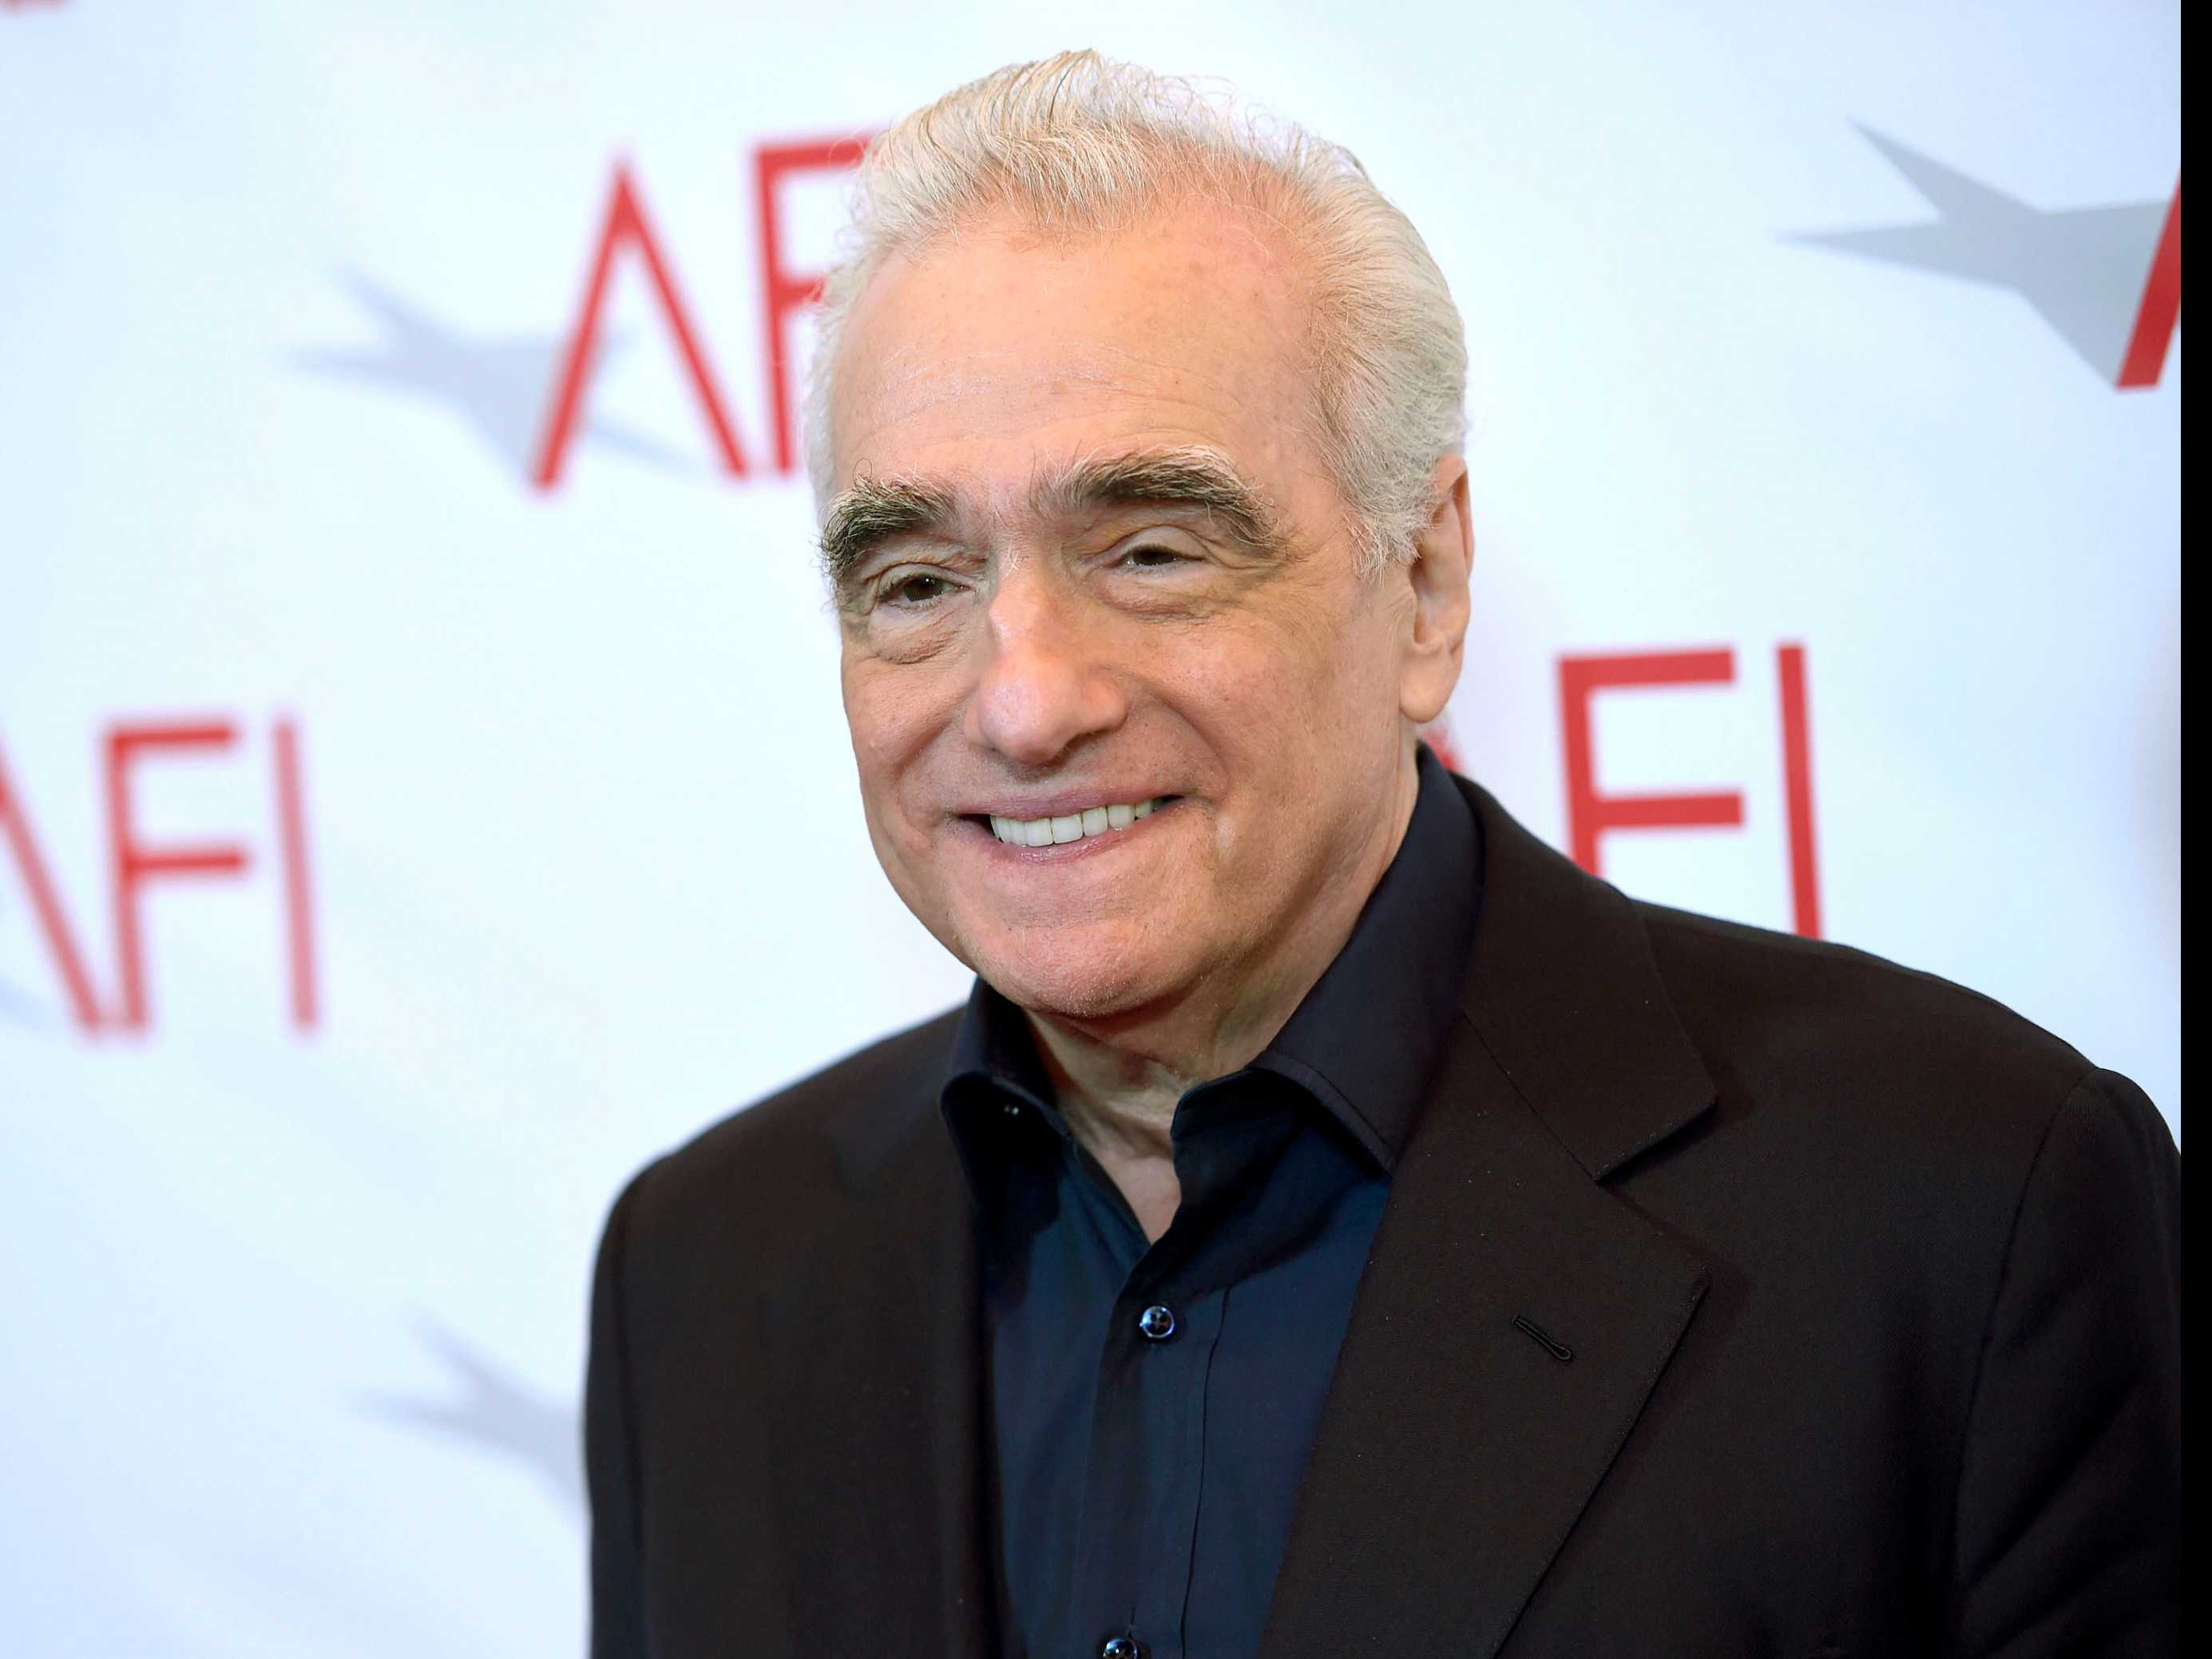 Martin Scorsese to Direct Comedy Special on 'SCTV' for Netflix